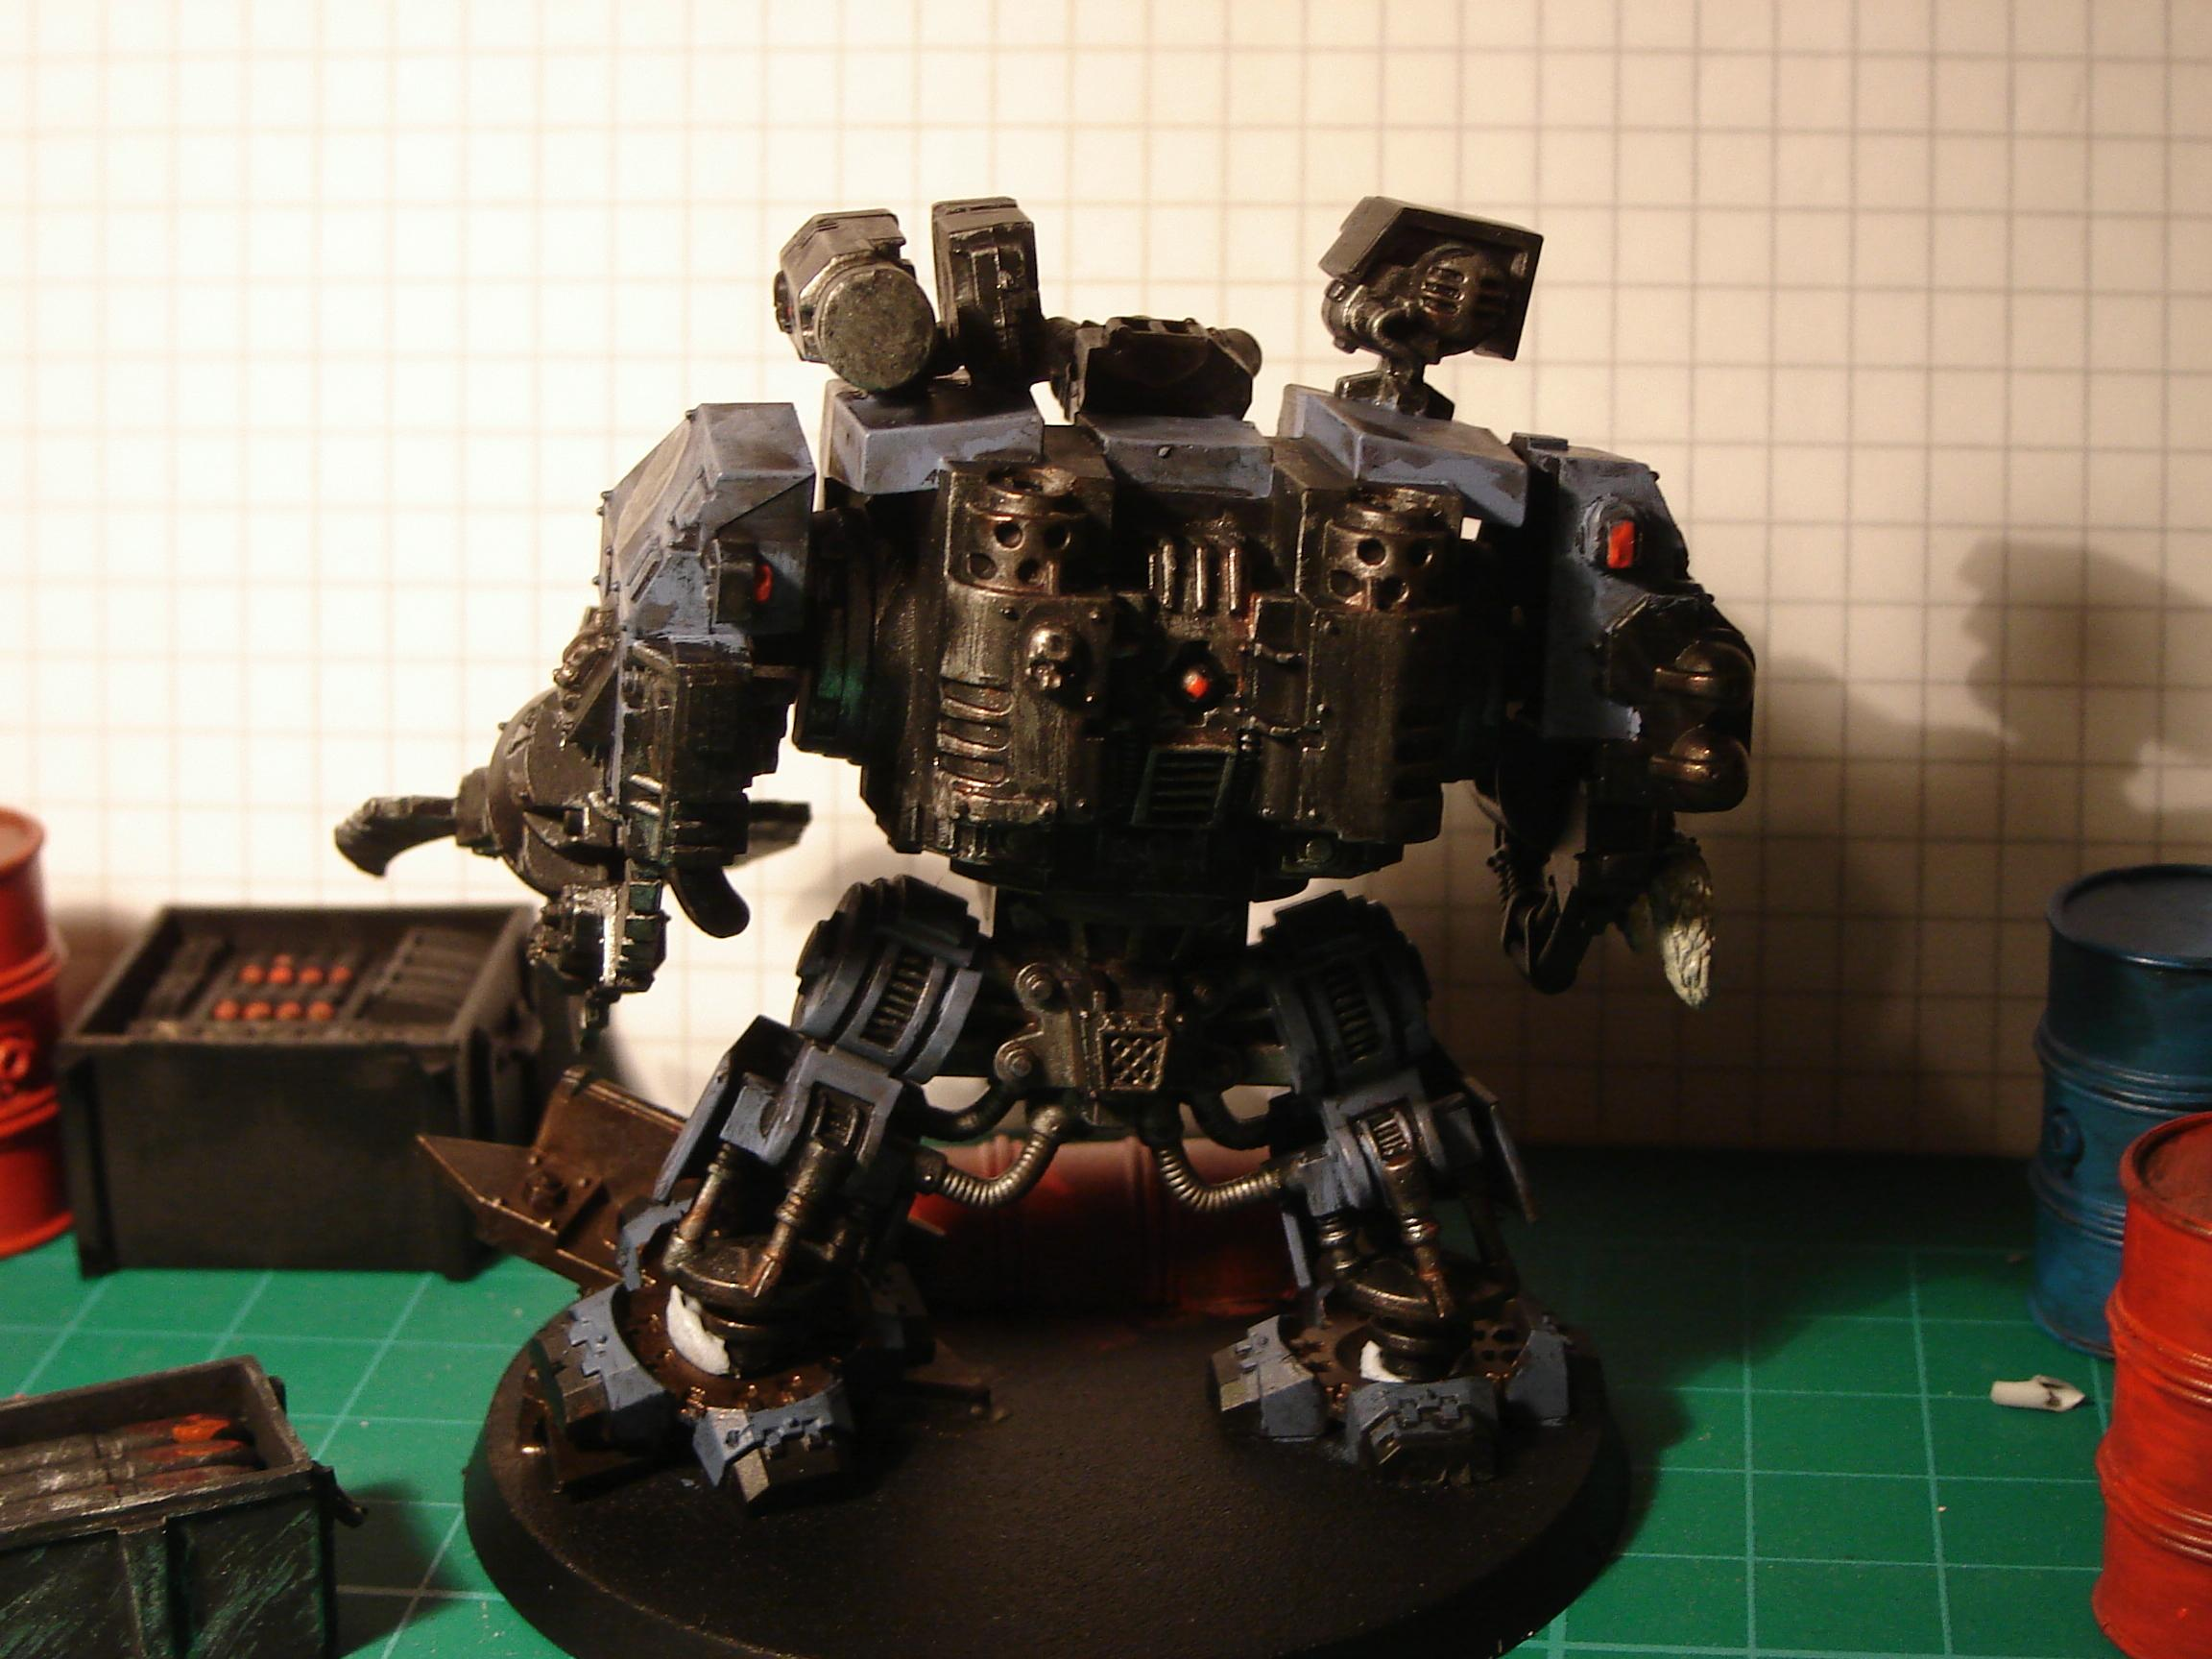 Conversion, Dreadnought, Space Marines, Space Wolves, Warhammer 40,000